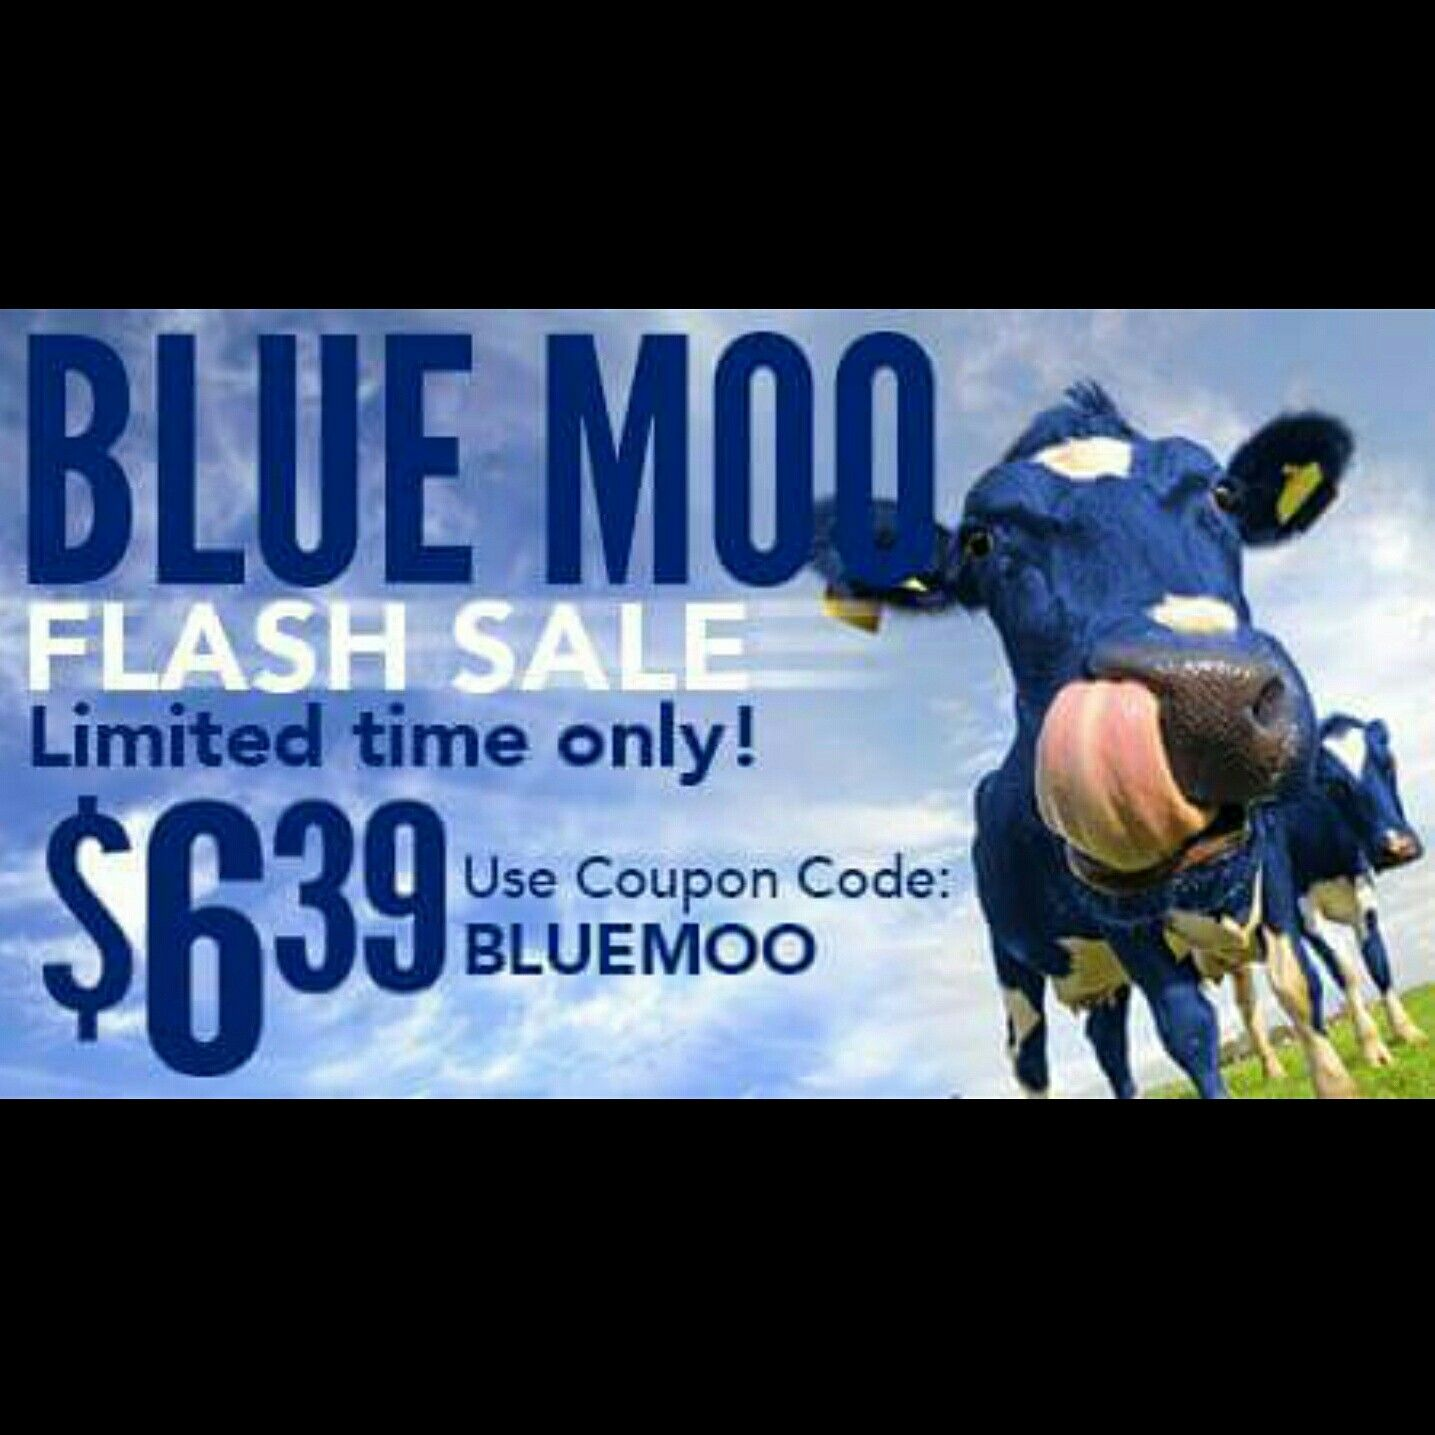 """National Don't Cry Over Spilled Milk Day! Blue Moo is a robust blend of blueberries & cream! $6.39 today only! Use promo code: """"BLUEMOO"""""""